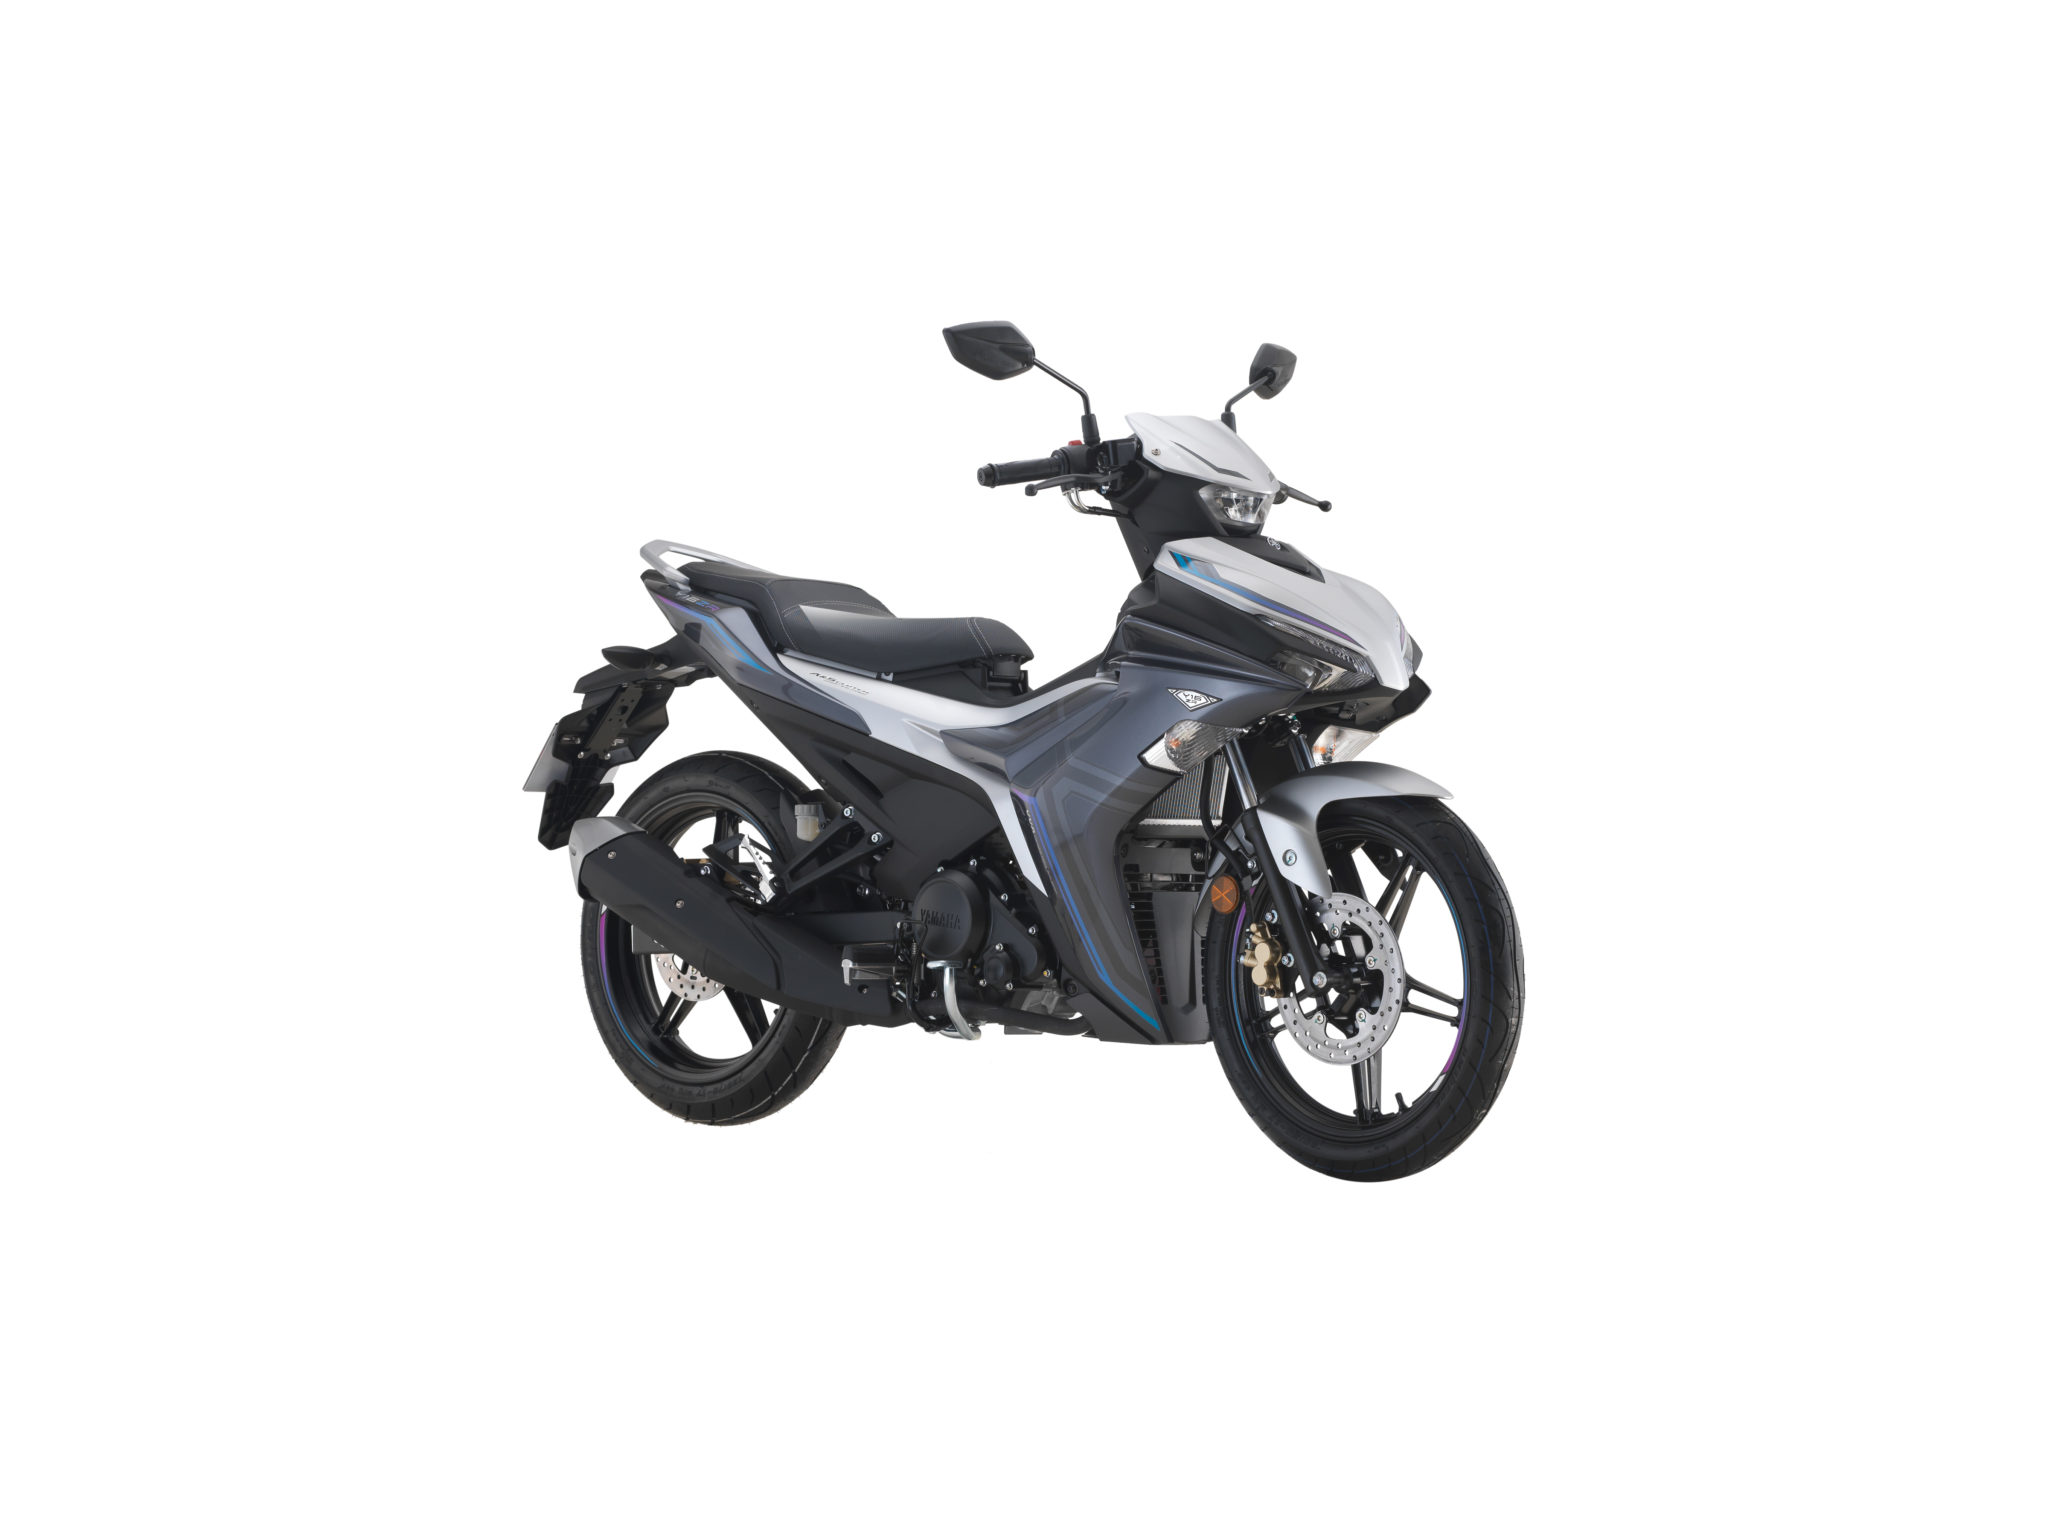 2021 Yamaha Y16ZR officially launched in Malaysia - RM10,888